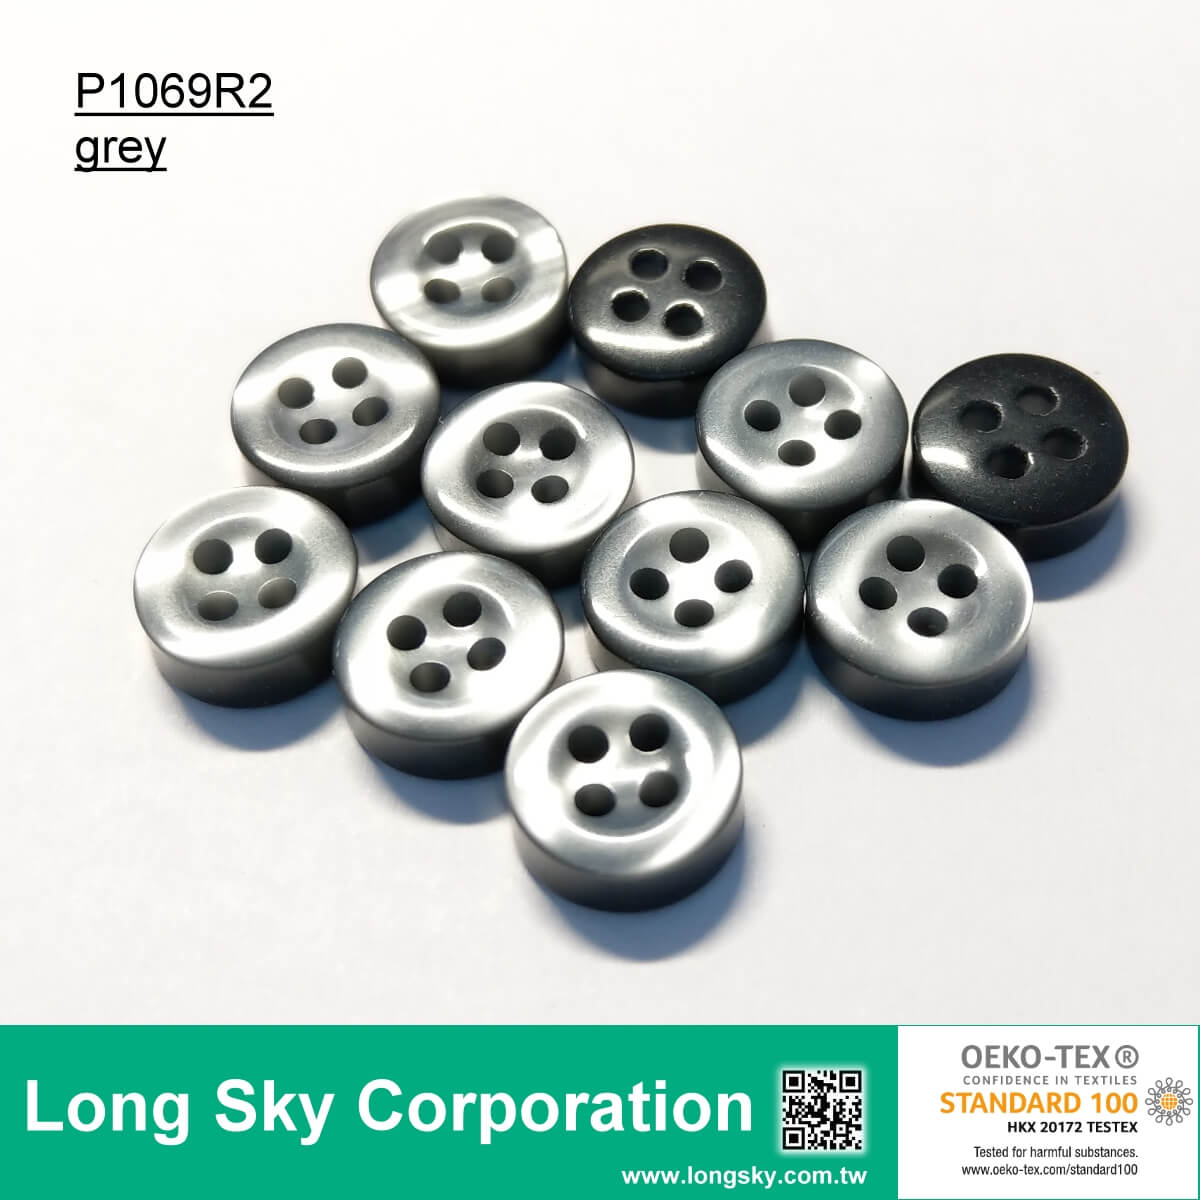 (P1069R2) 16L, 14L light cream and grey color Imitation Shell Polyester Resin Shirt Button